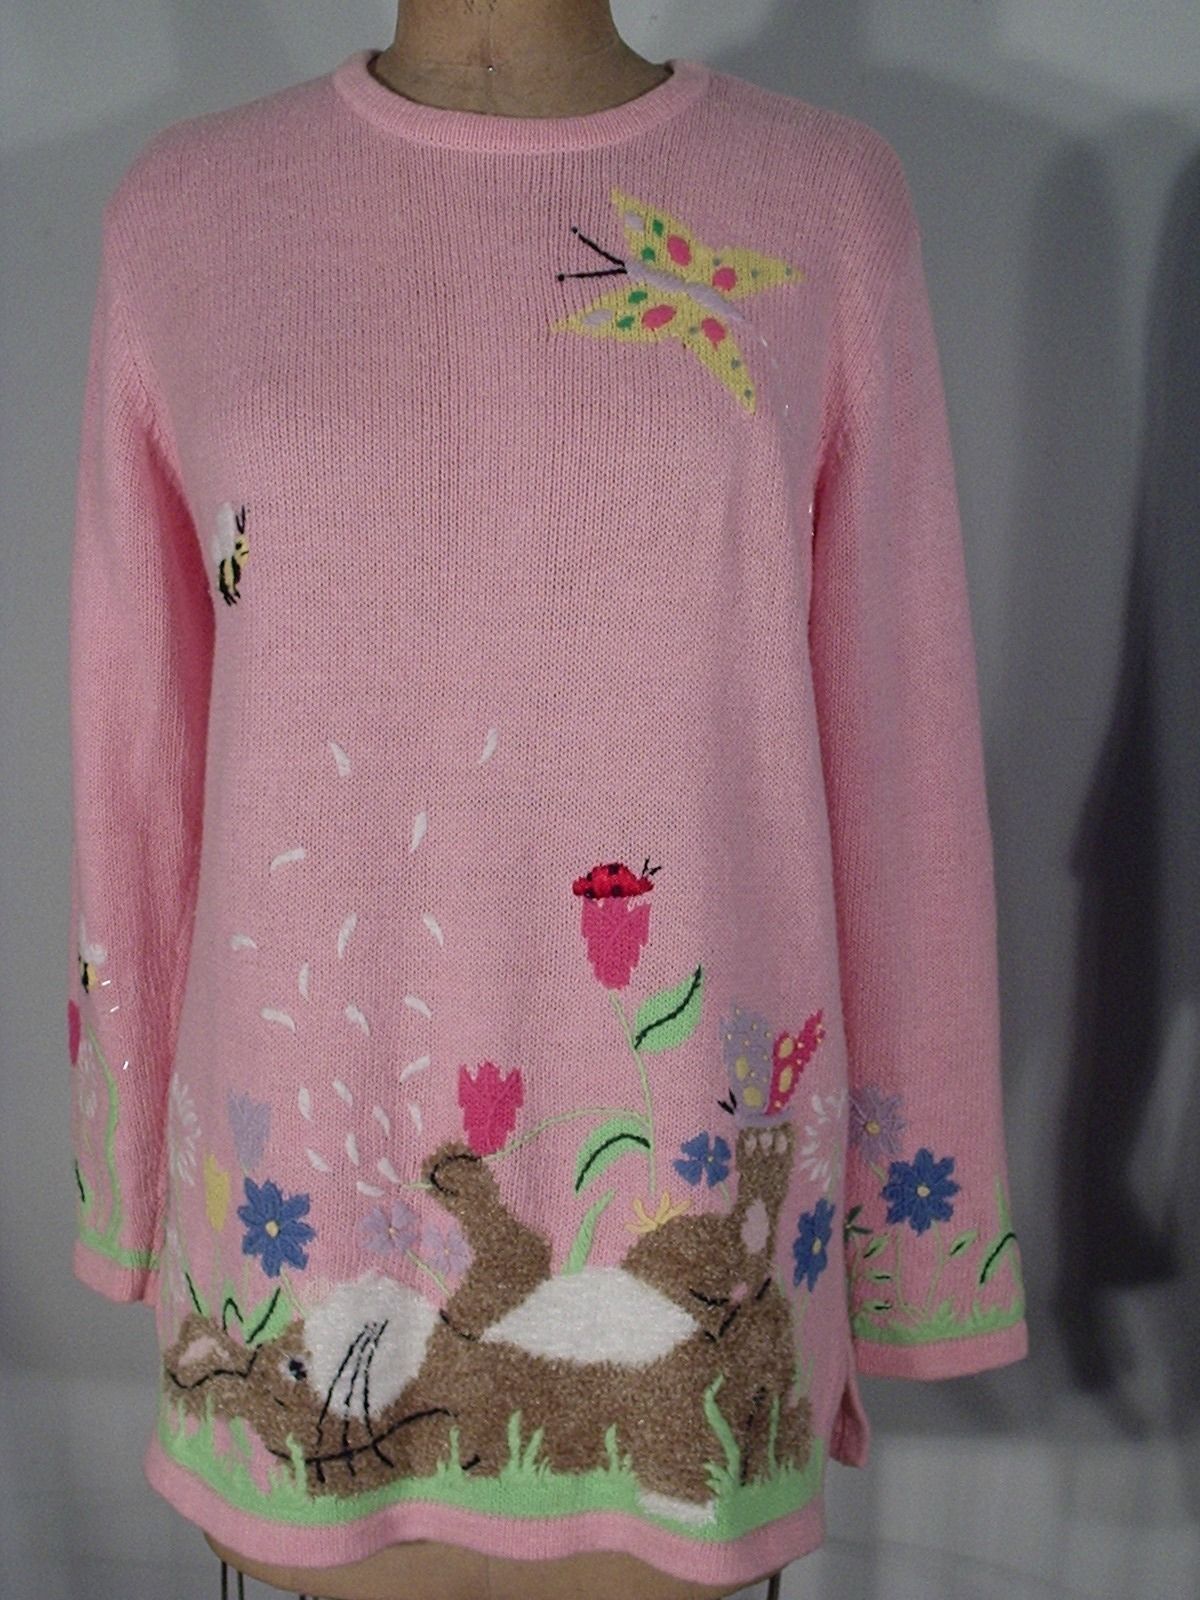 Quacker Factory Ugly Easter Sweater on auction at eBay